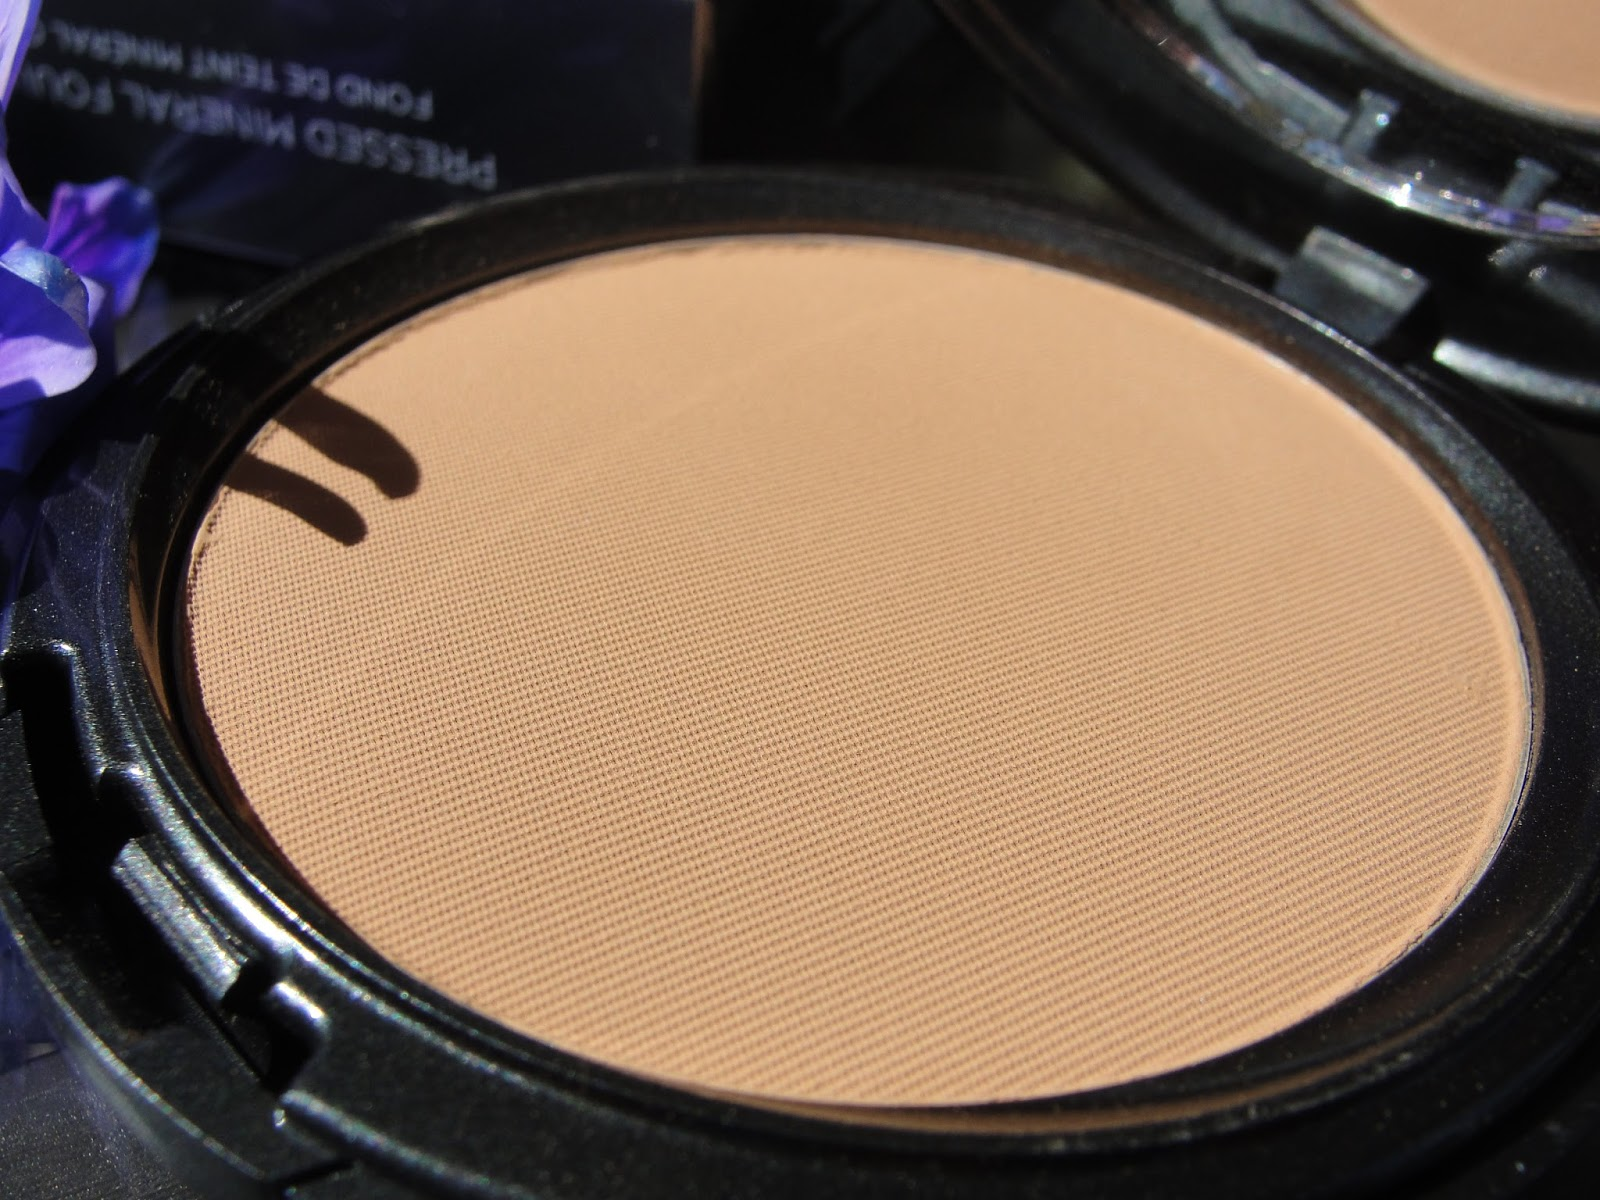 Cover fx oil absorbing powder